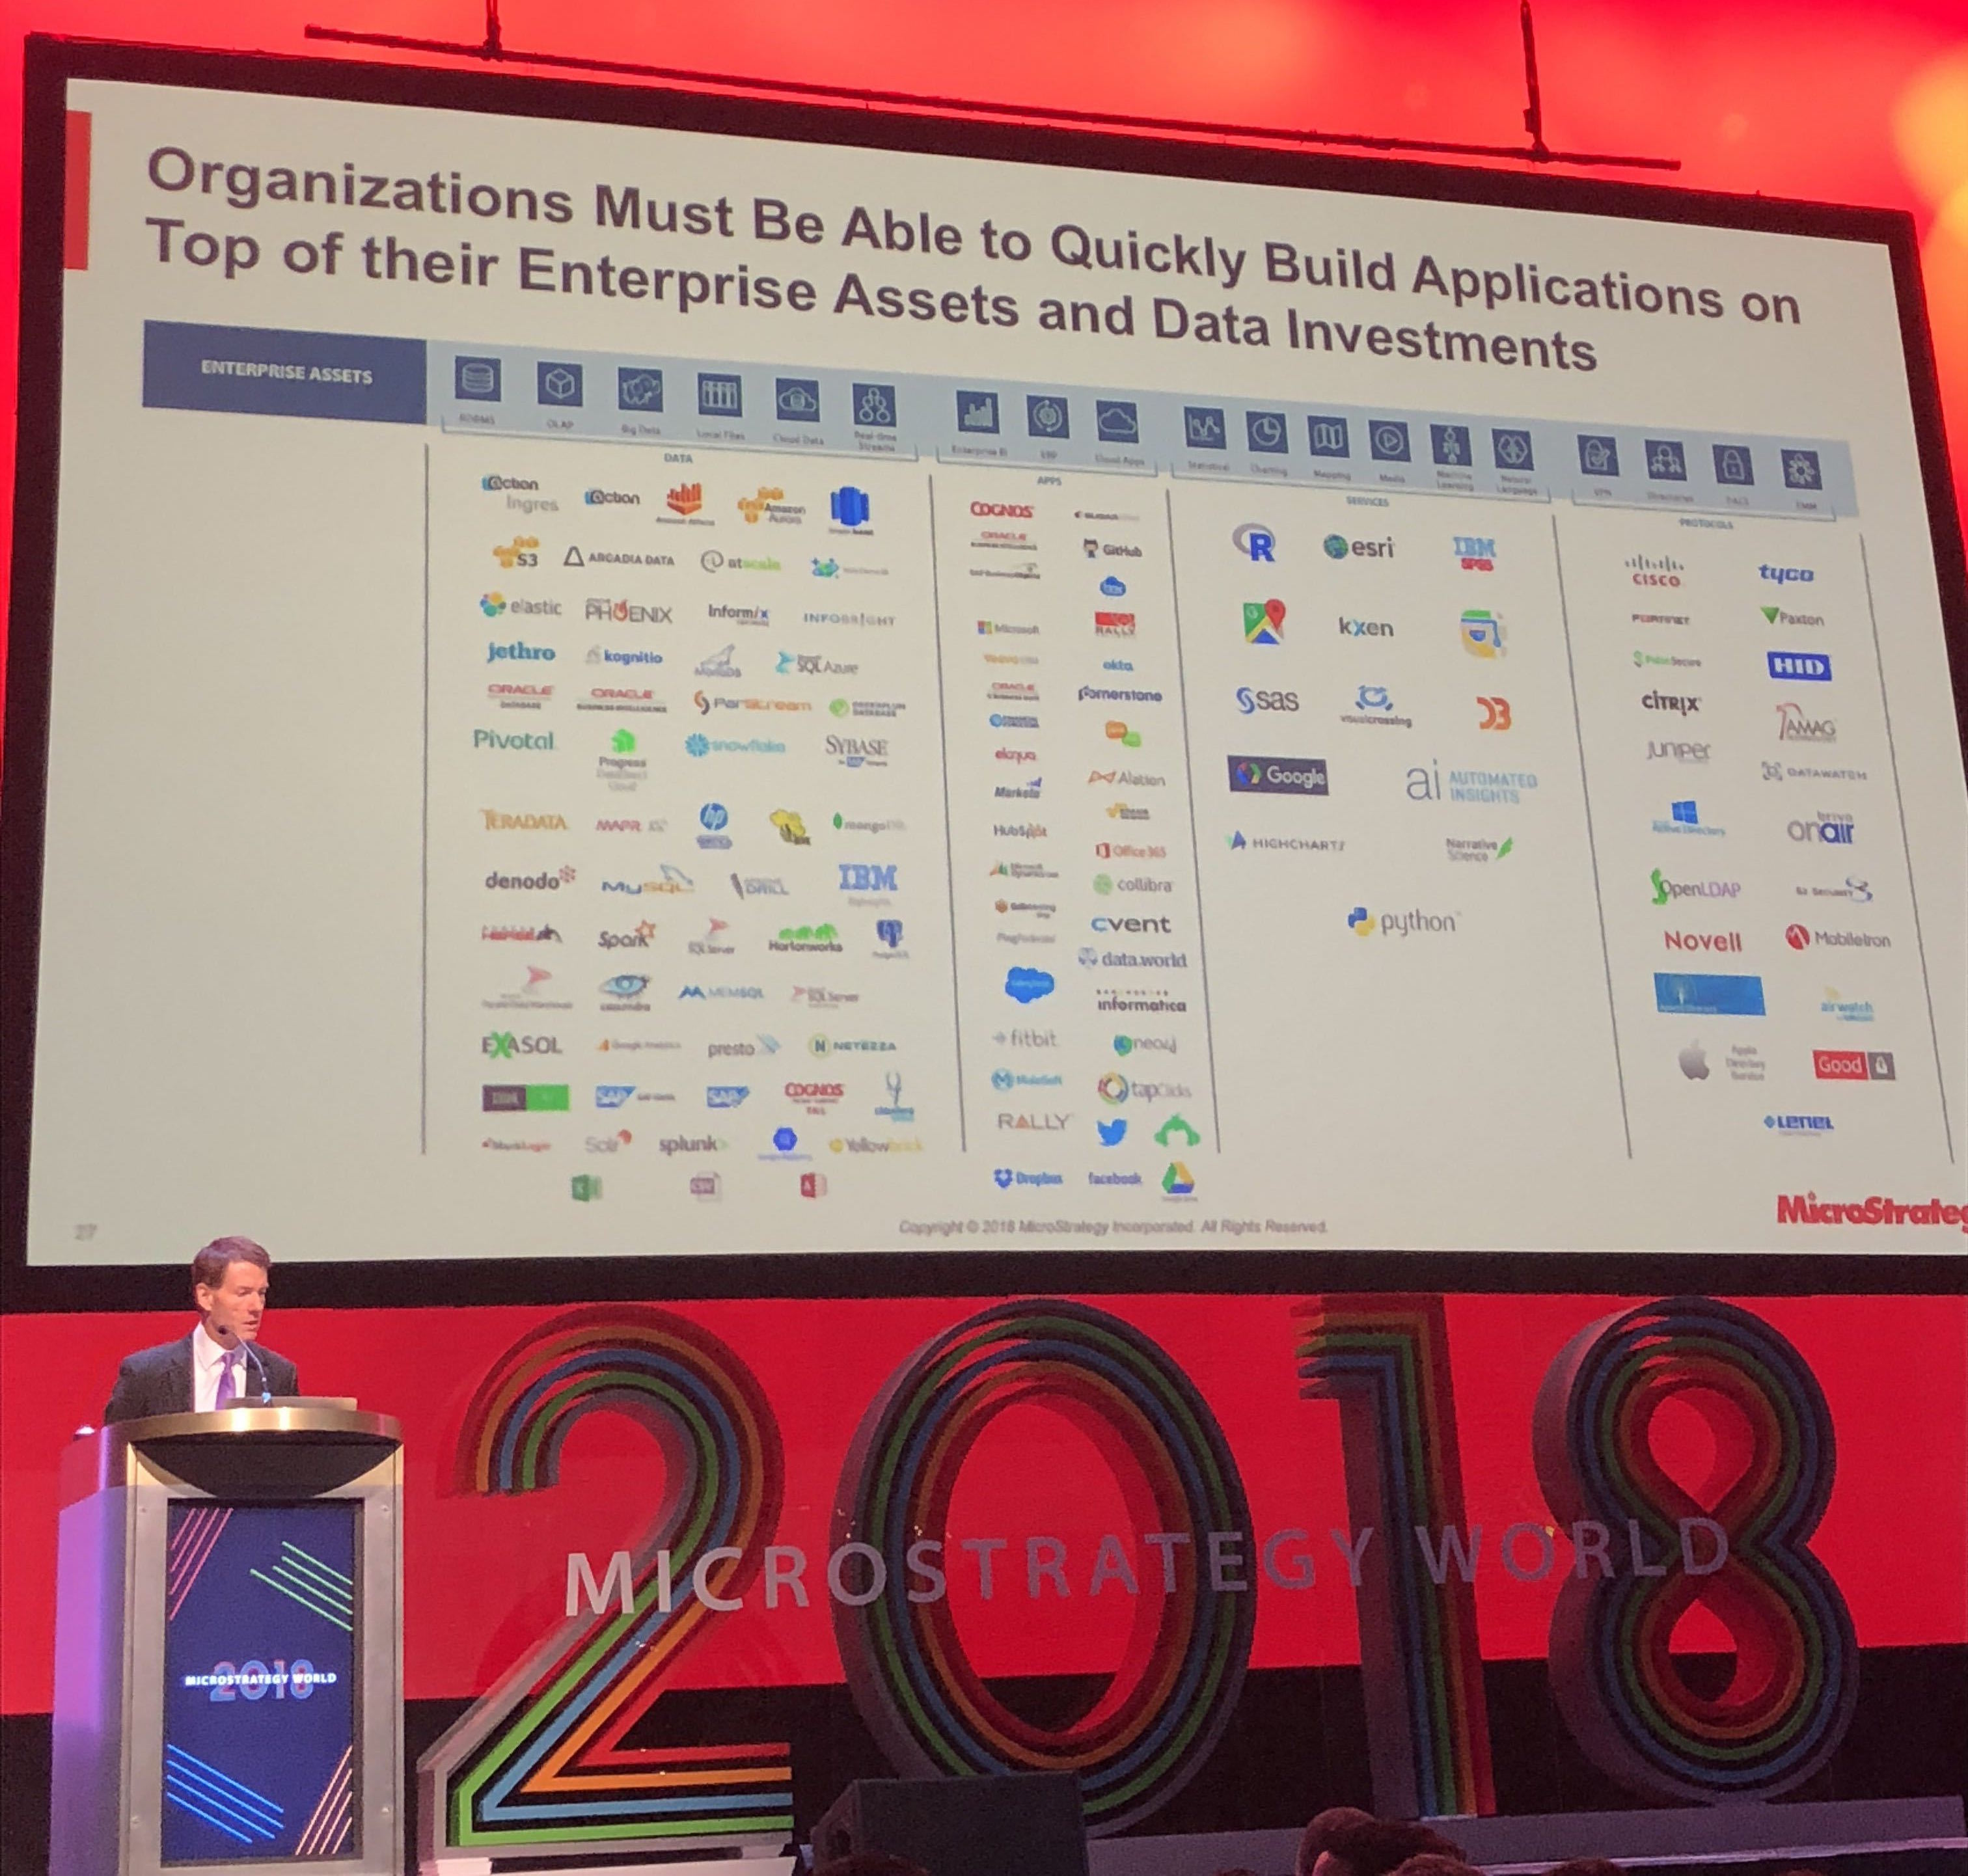 MicroStrategy World Conference 2018